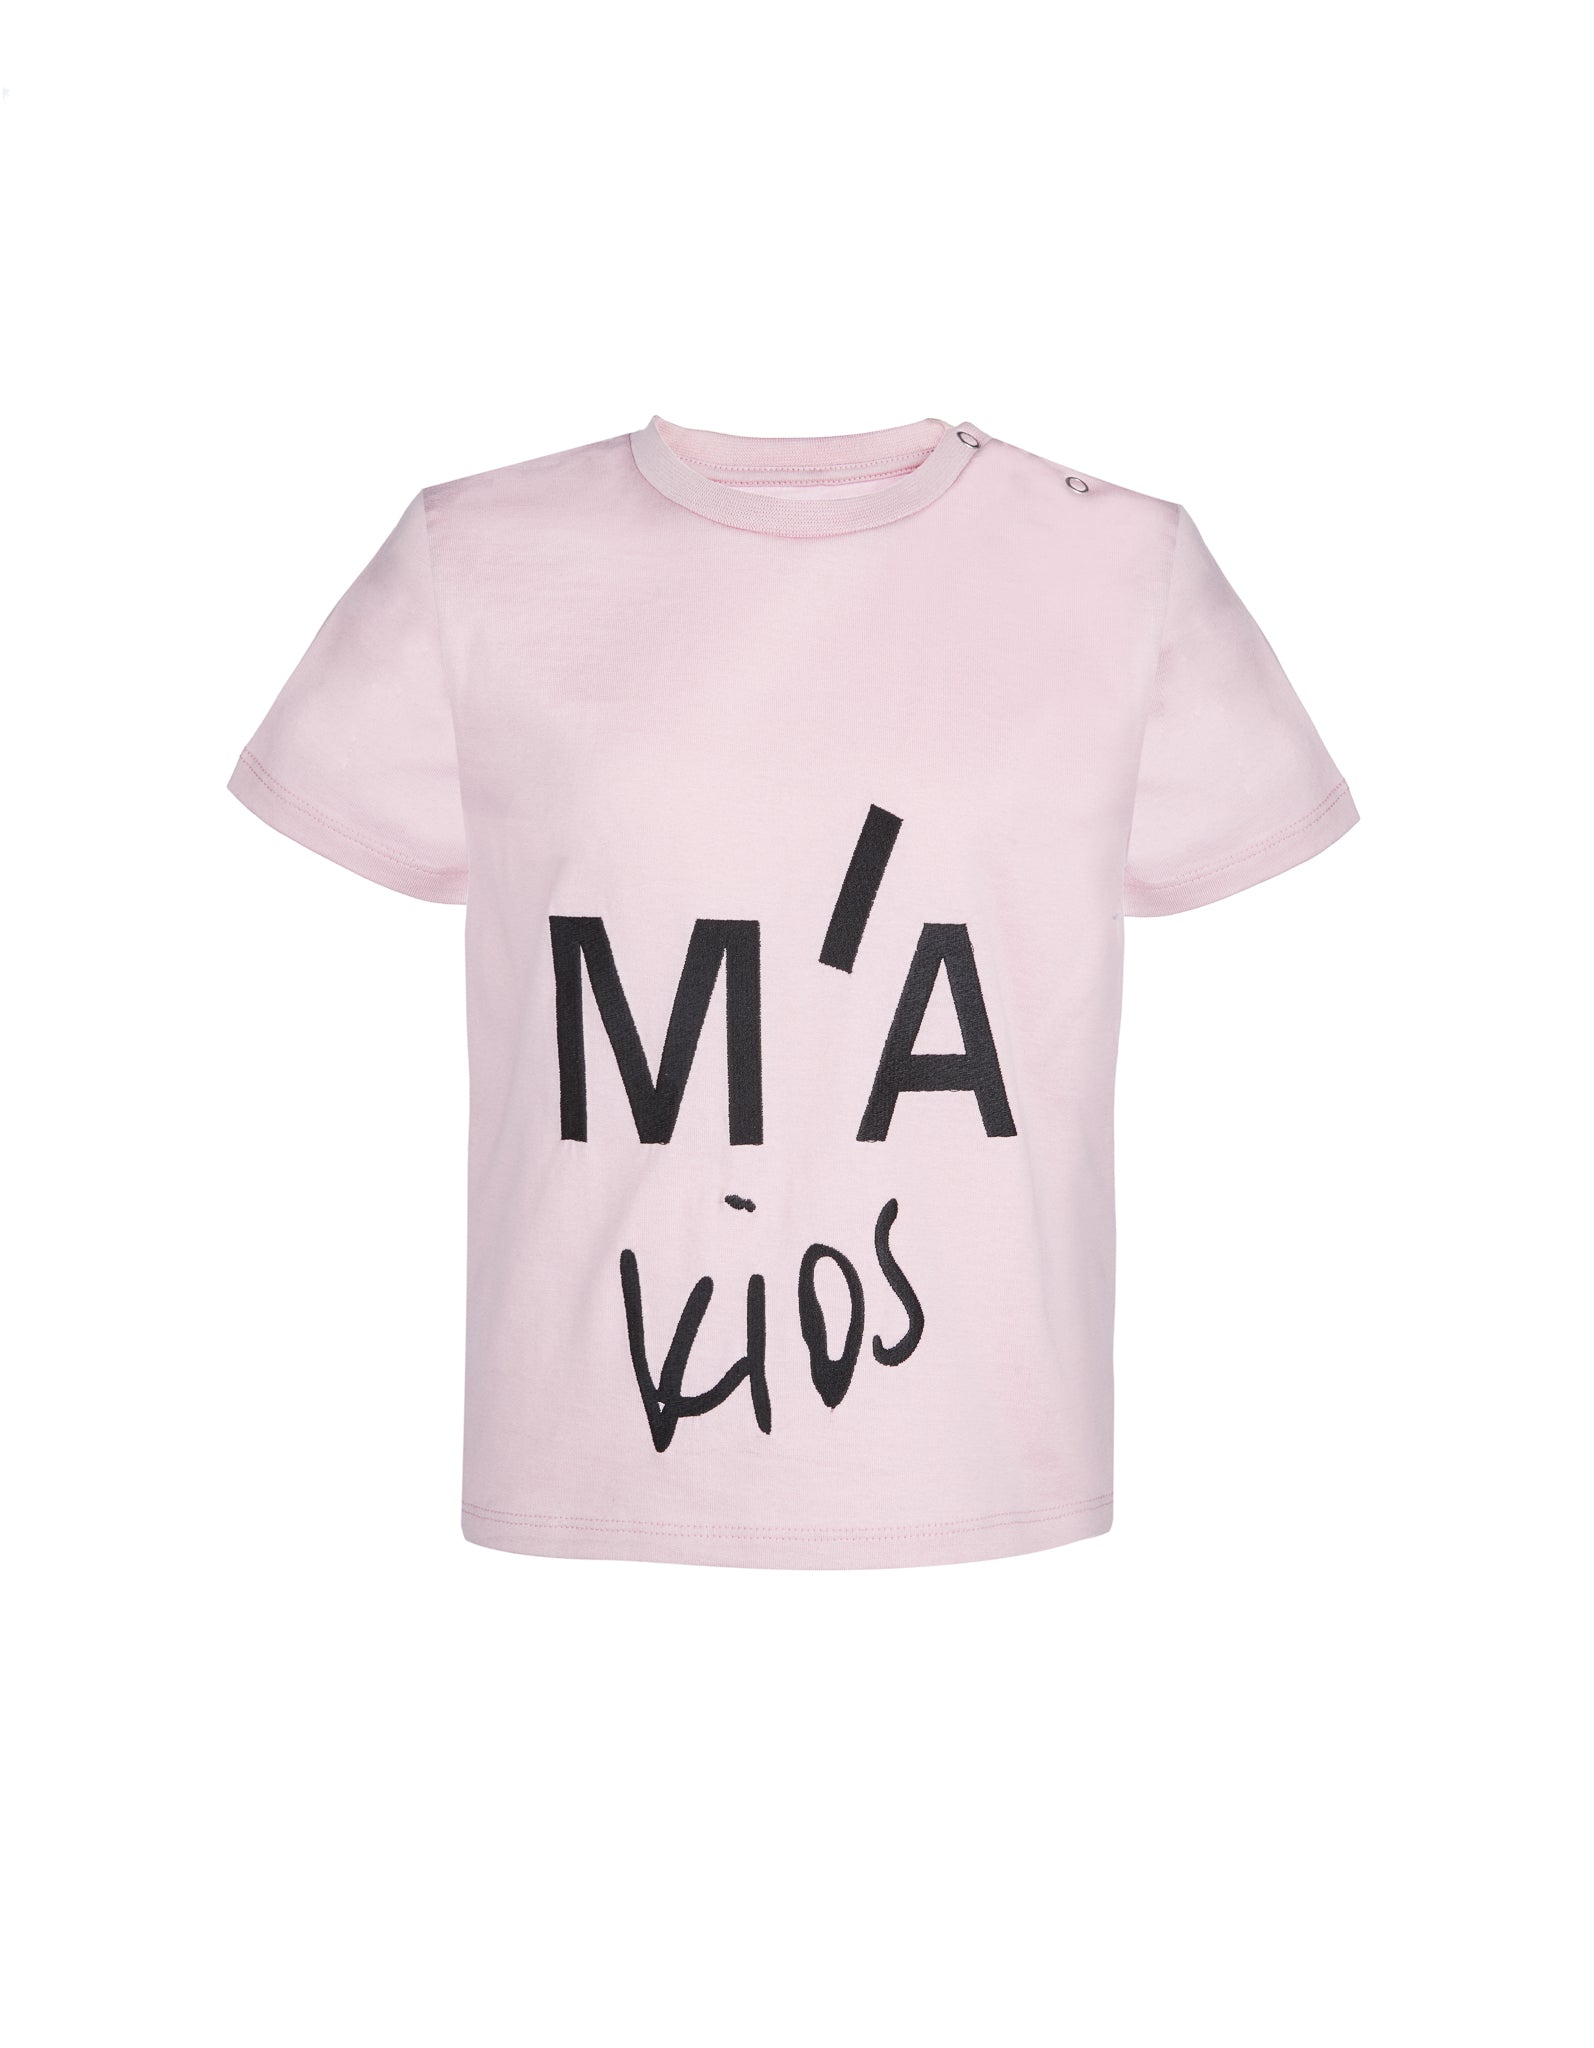 M'A KIDS EMBROIDERED CAP SLEEVE TOP IN PINK